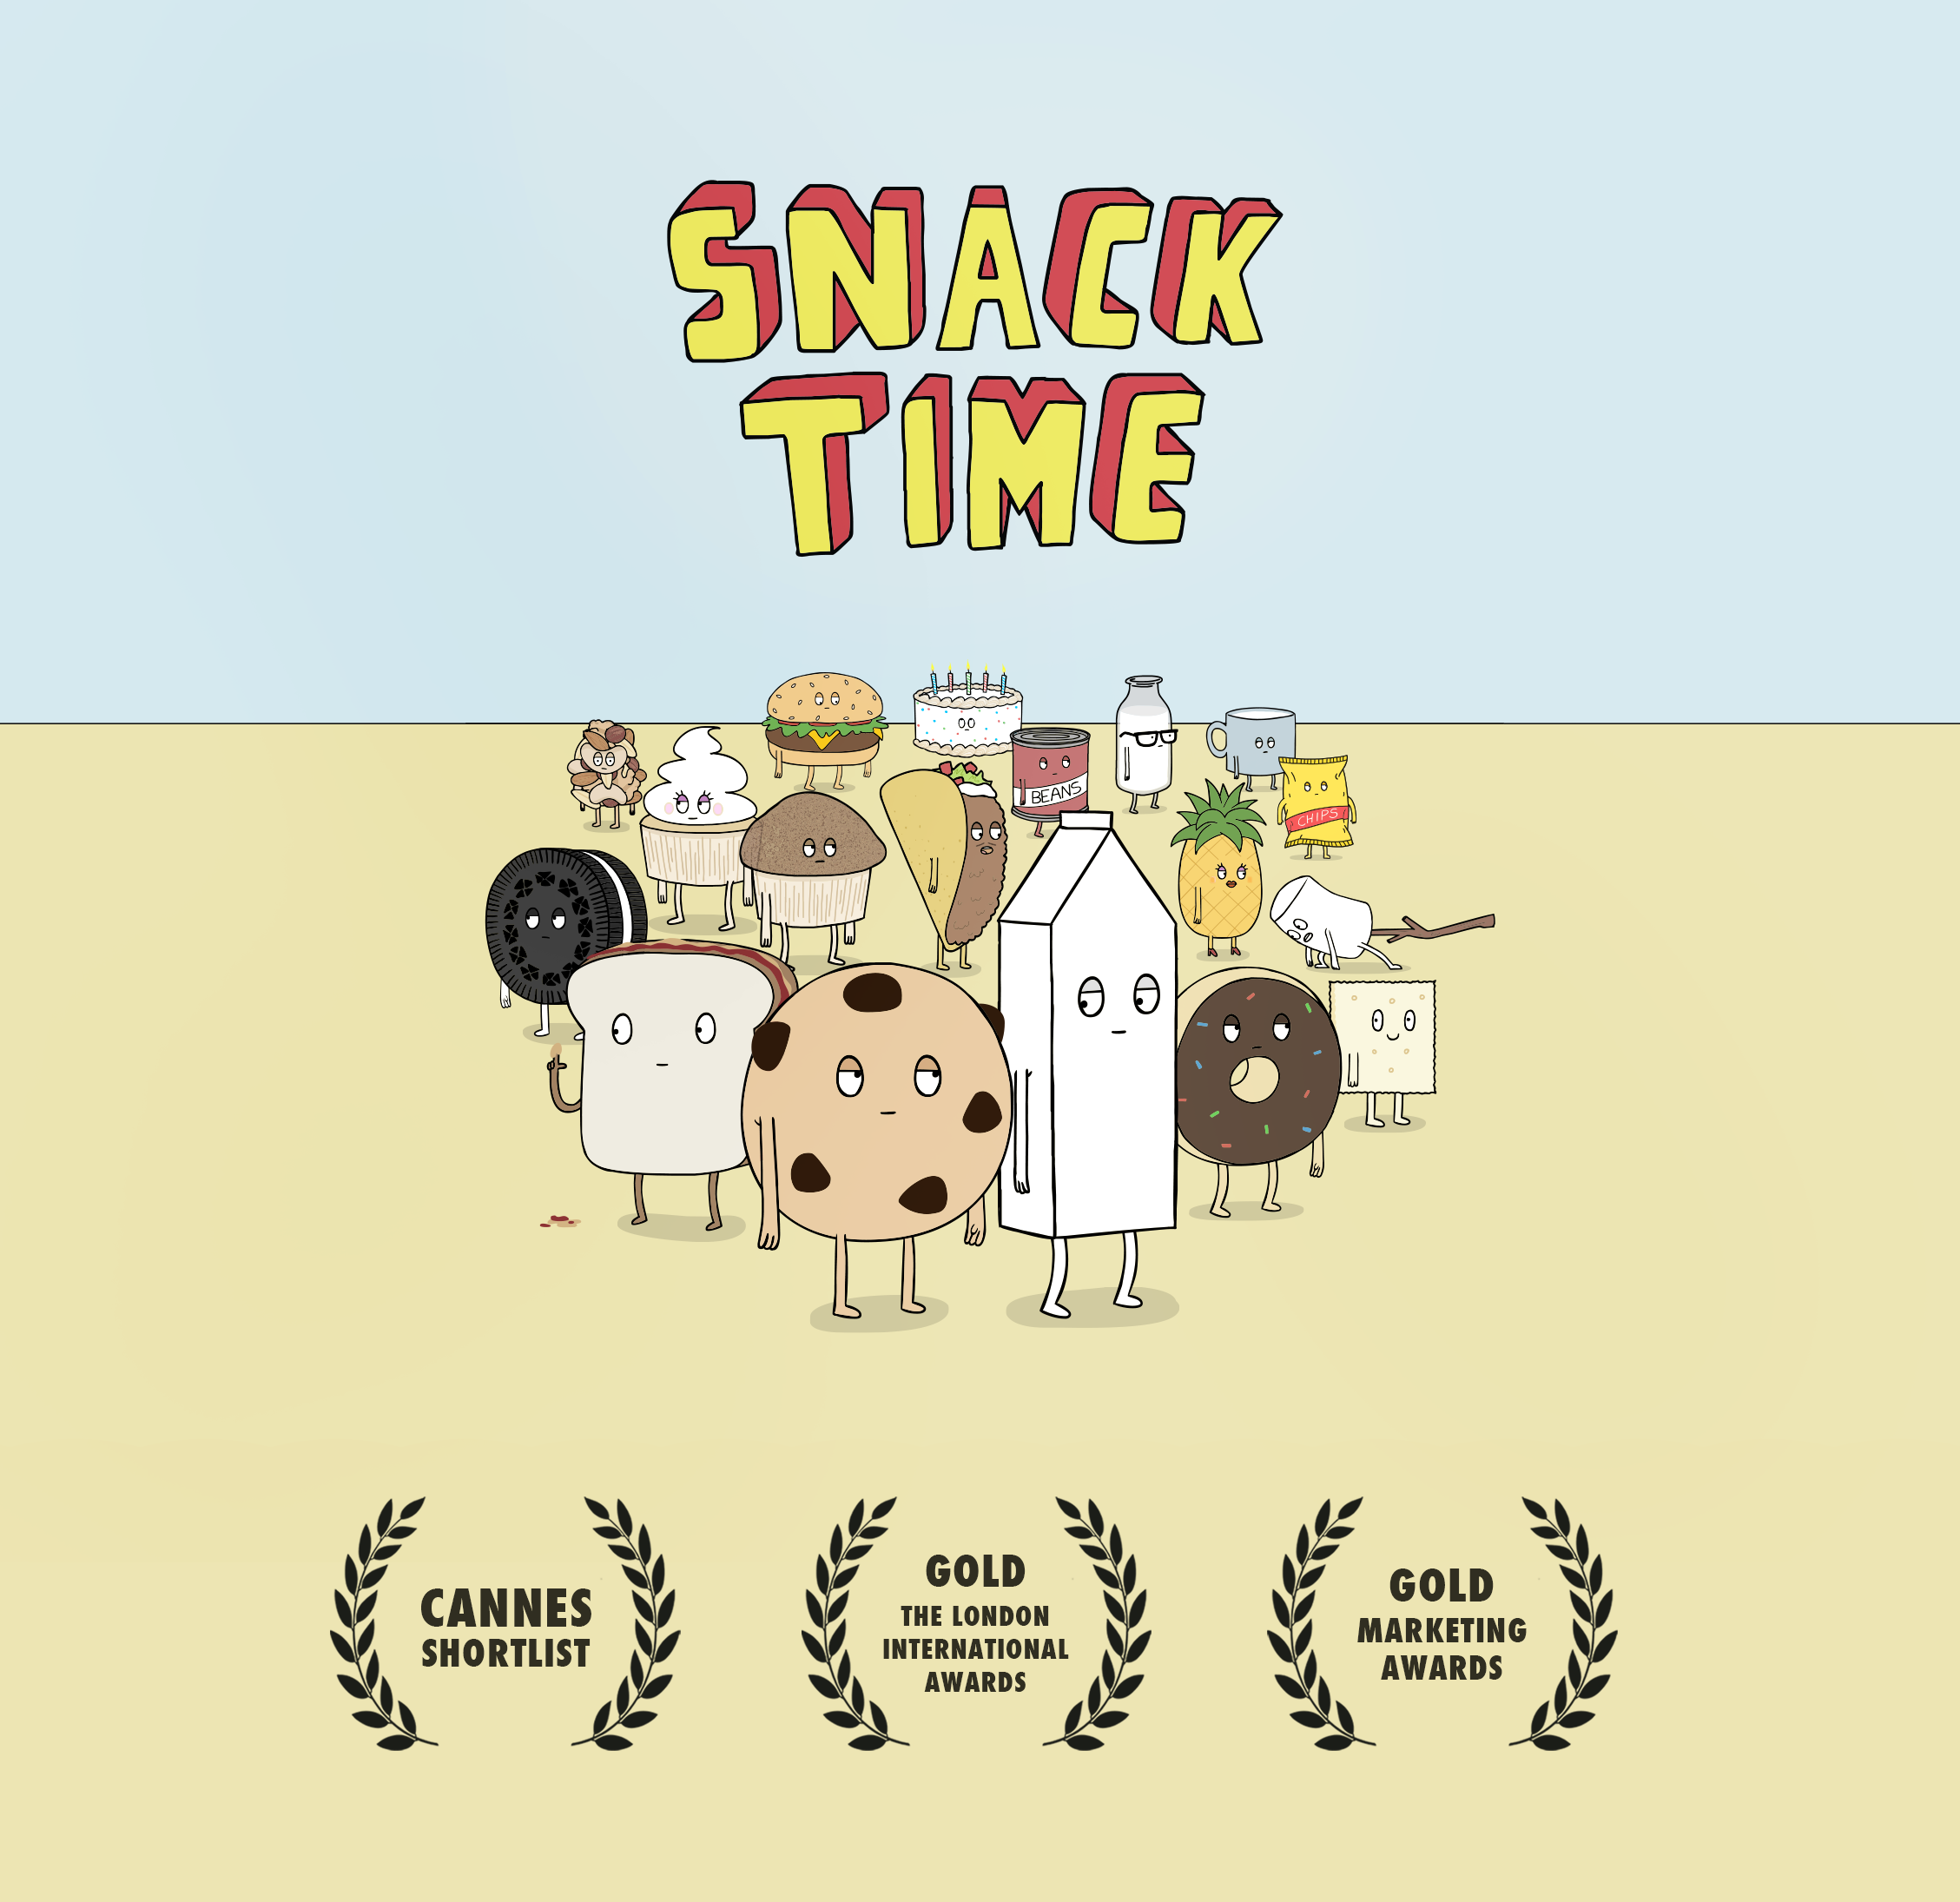 snack-time-cannes-creative-larigakis.png